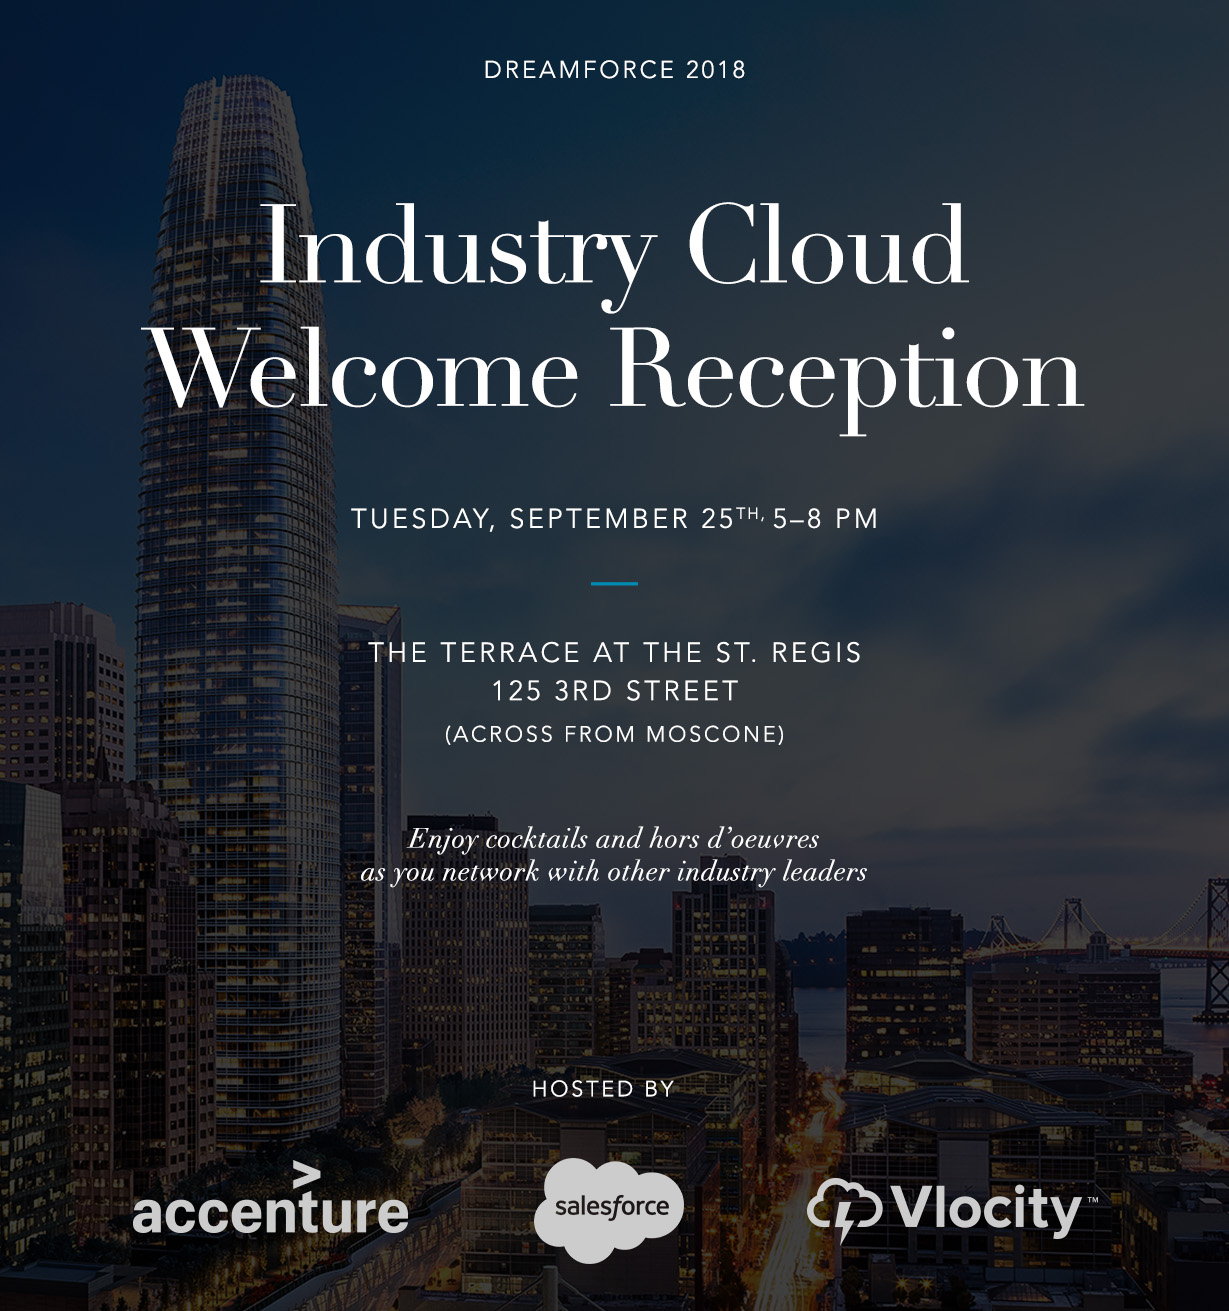 Dreamforce 2017 Industry Cloud Welcome Reception